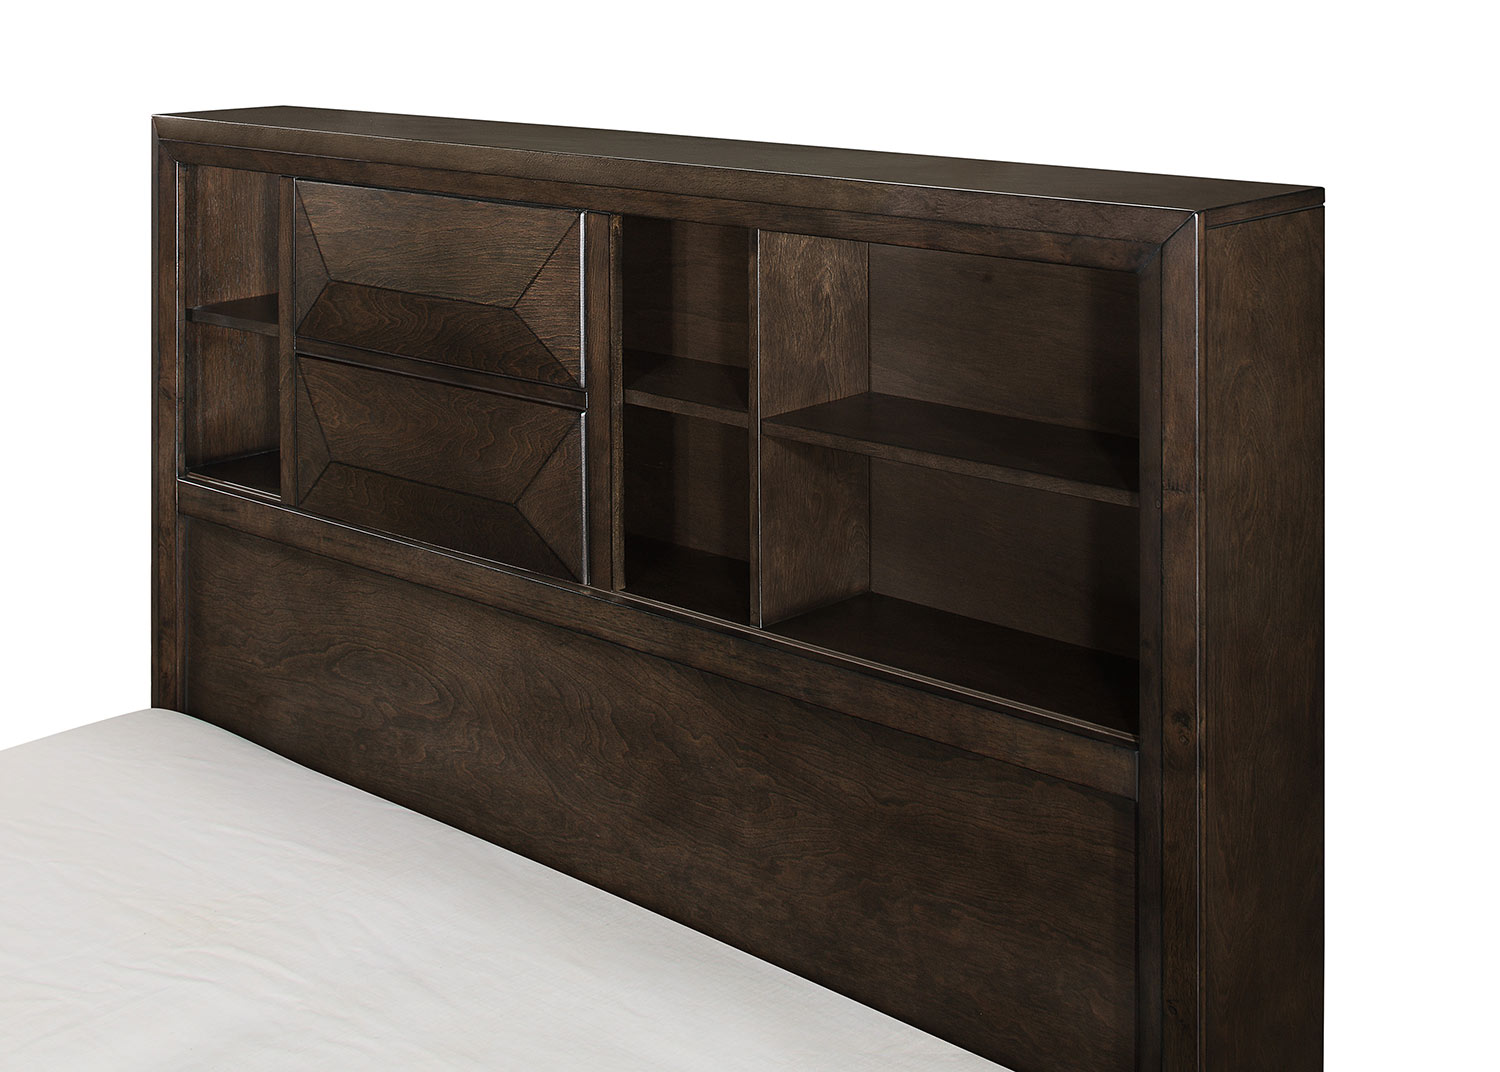 Homelegance Chesky Platform Storage Bed - Warm Espresso